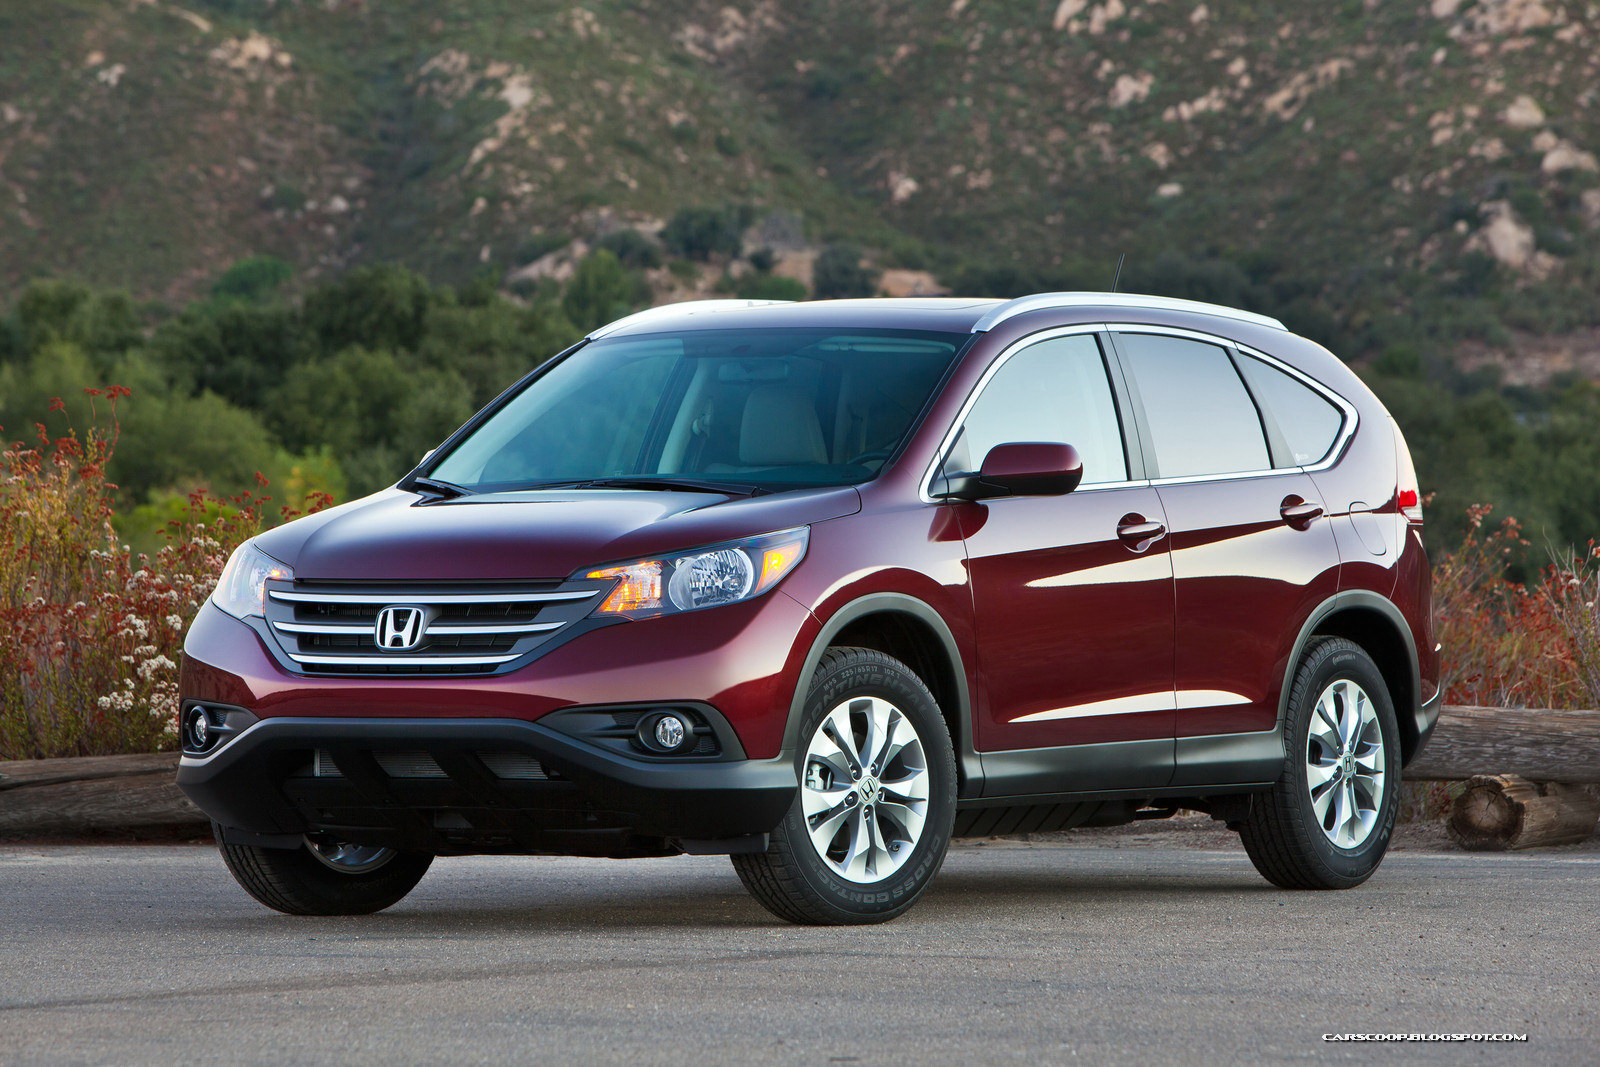 2012 honda crv related images start 0   weili automotive